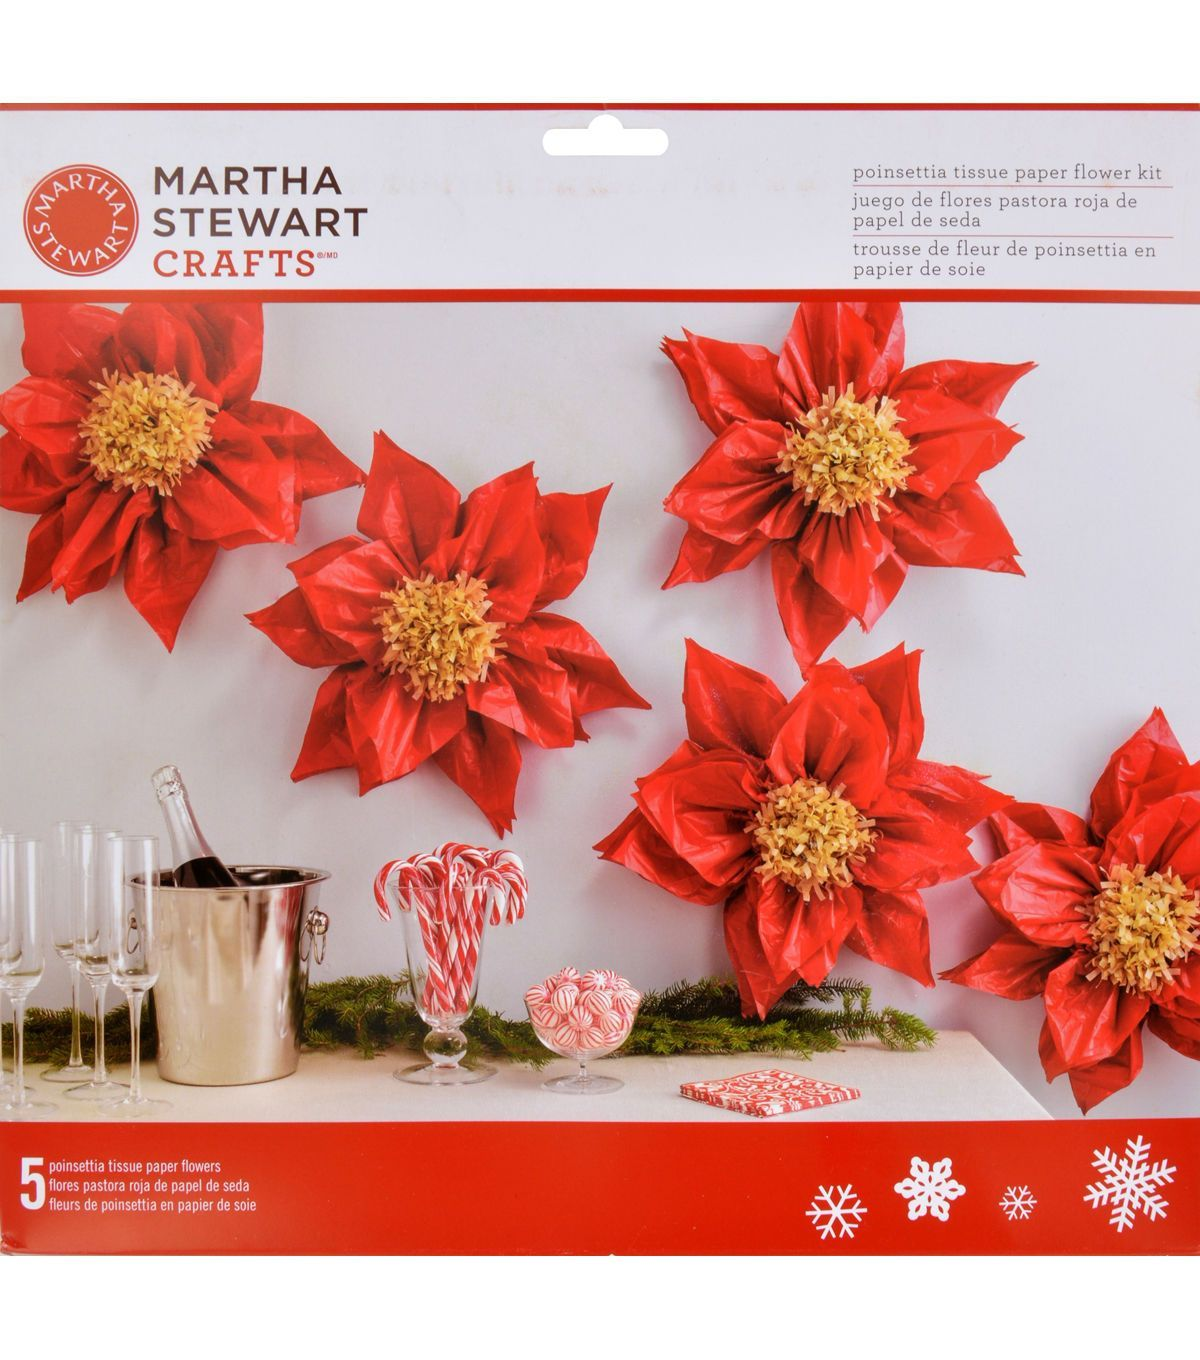 Martha stewart crafts holiday lodge tissue paper flower kit martha martha stewart crafts holiday lodge tissue paper flower kit mightylinksfo